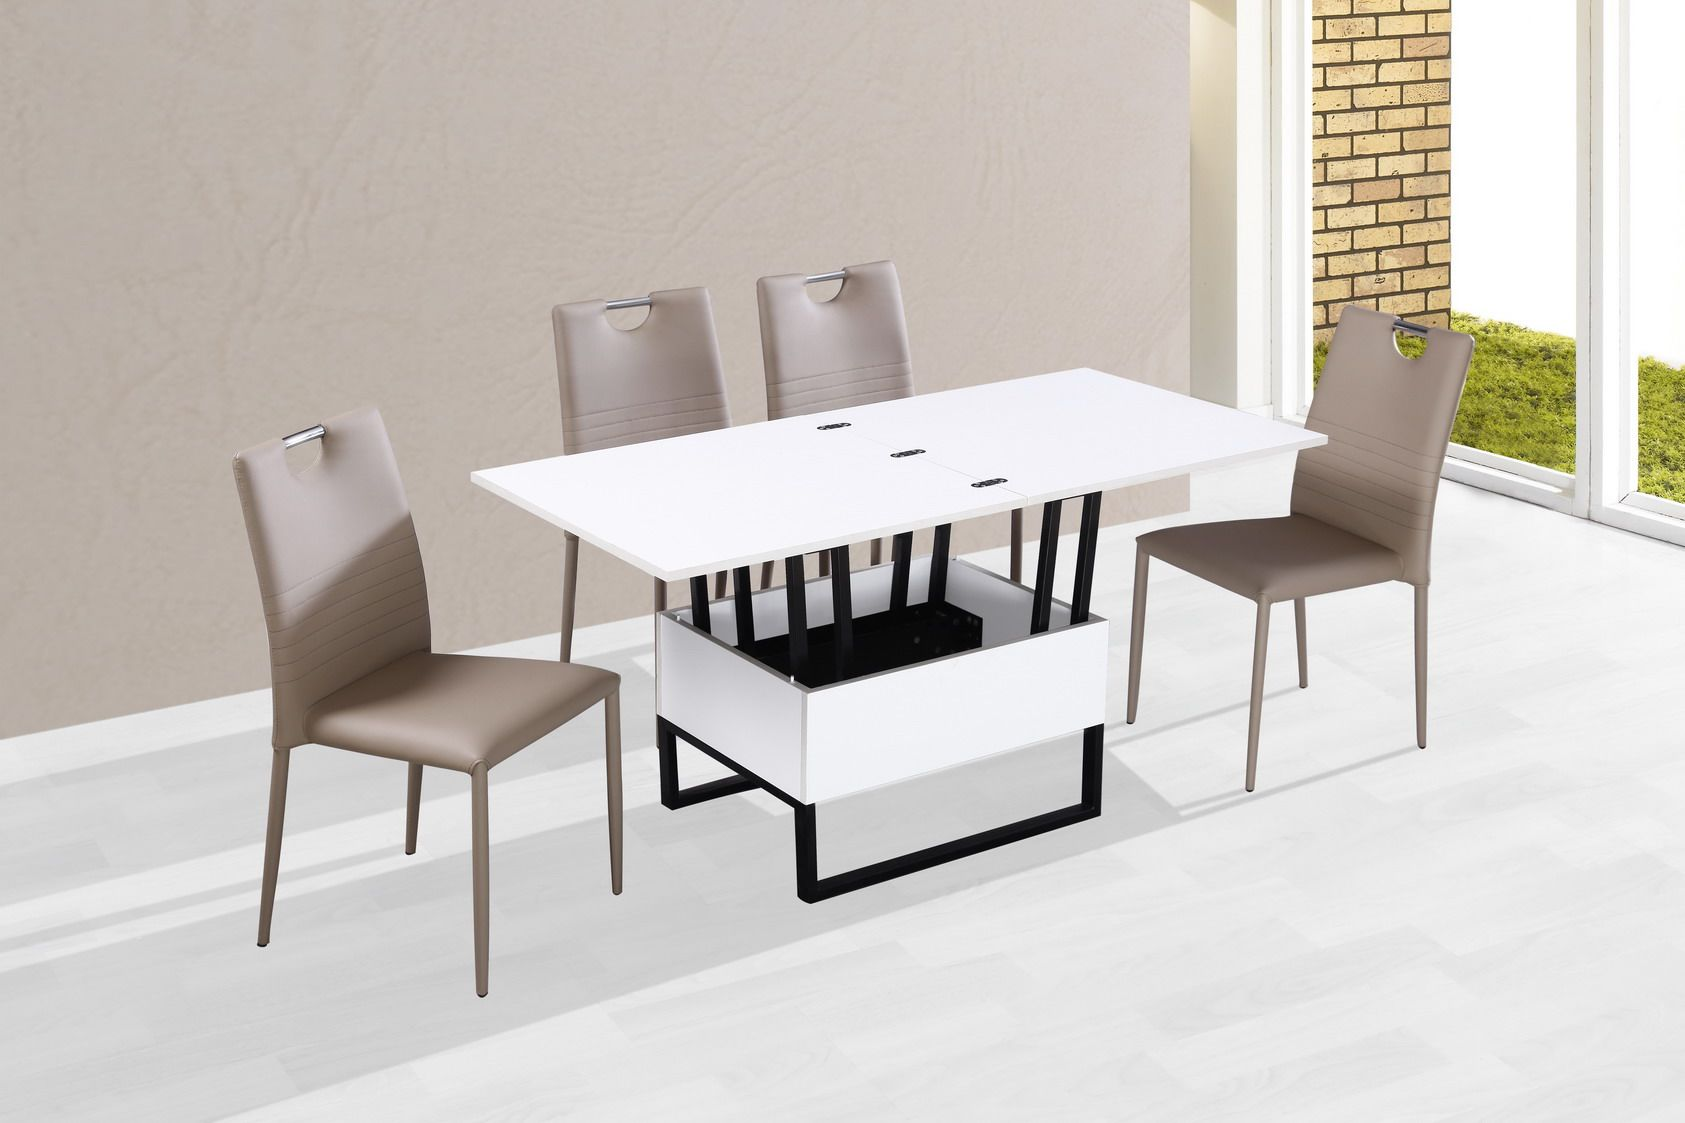 Des tables basses transformables guten morgwen - Table basse relevable cassidy ...